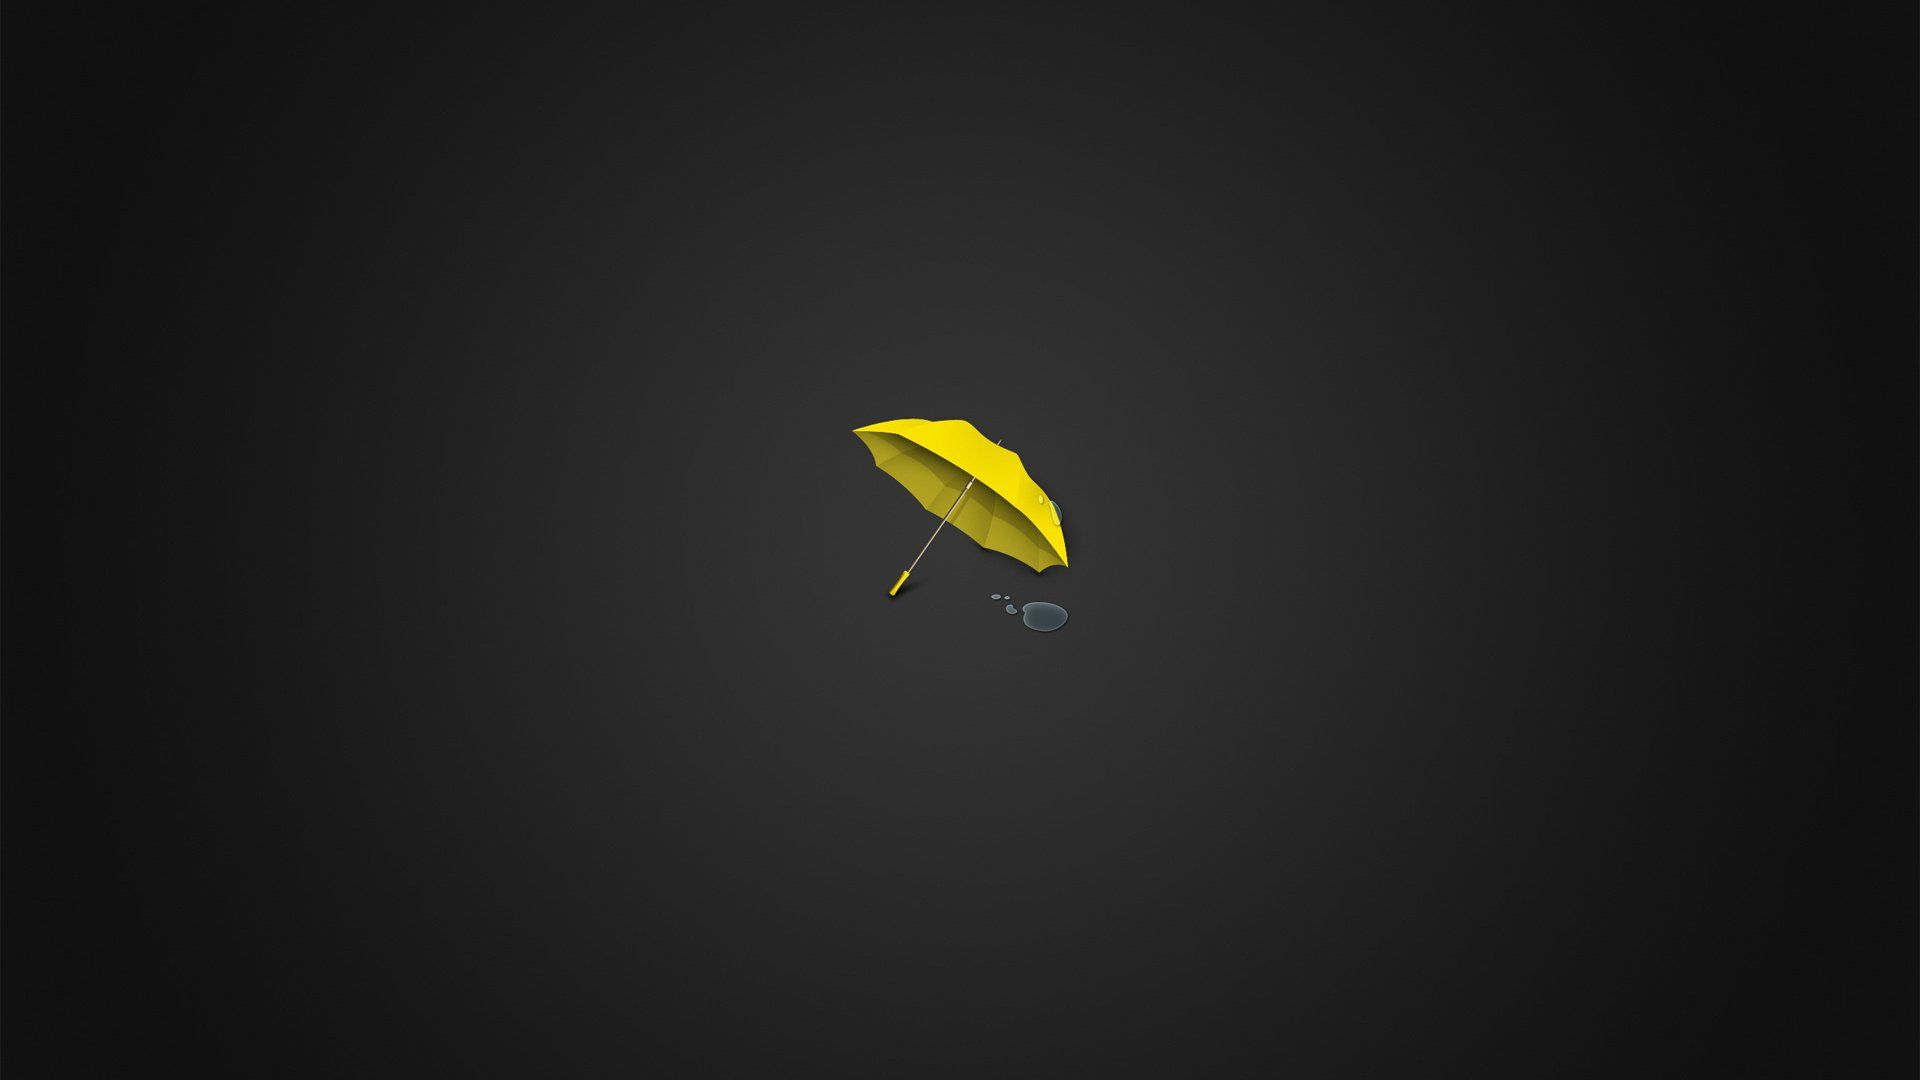 Athestic Yellow Minimal Wallpapers - Top Free Athestic